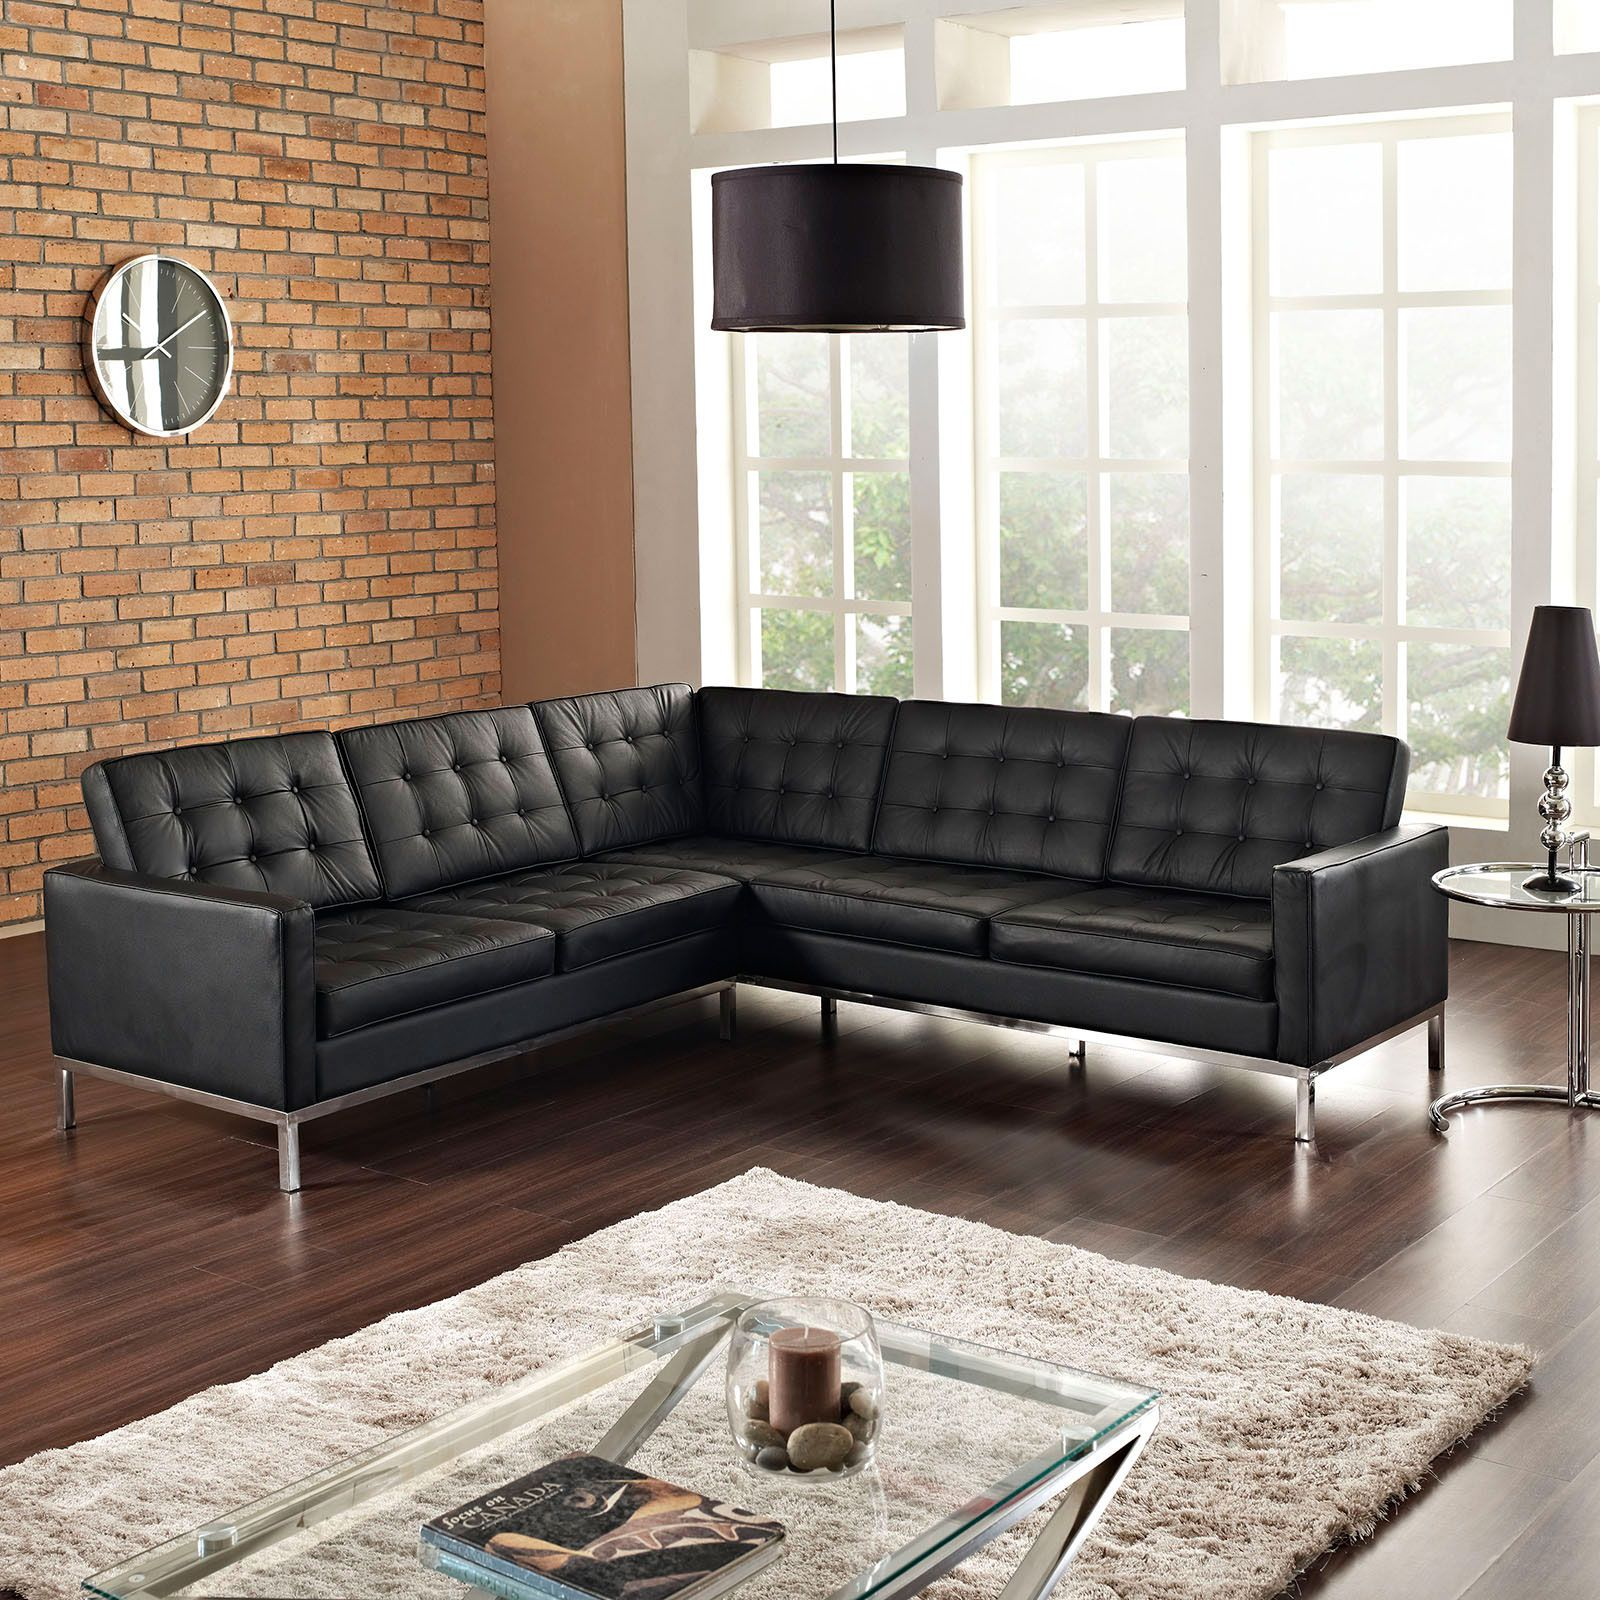 sofa sectional about living remodel with room couch leather fresh black ideas